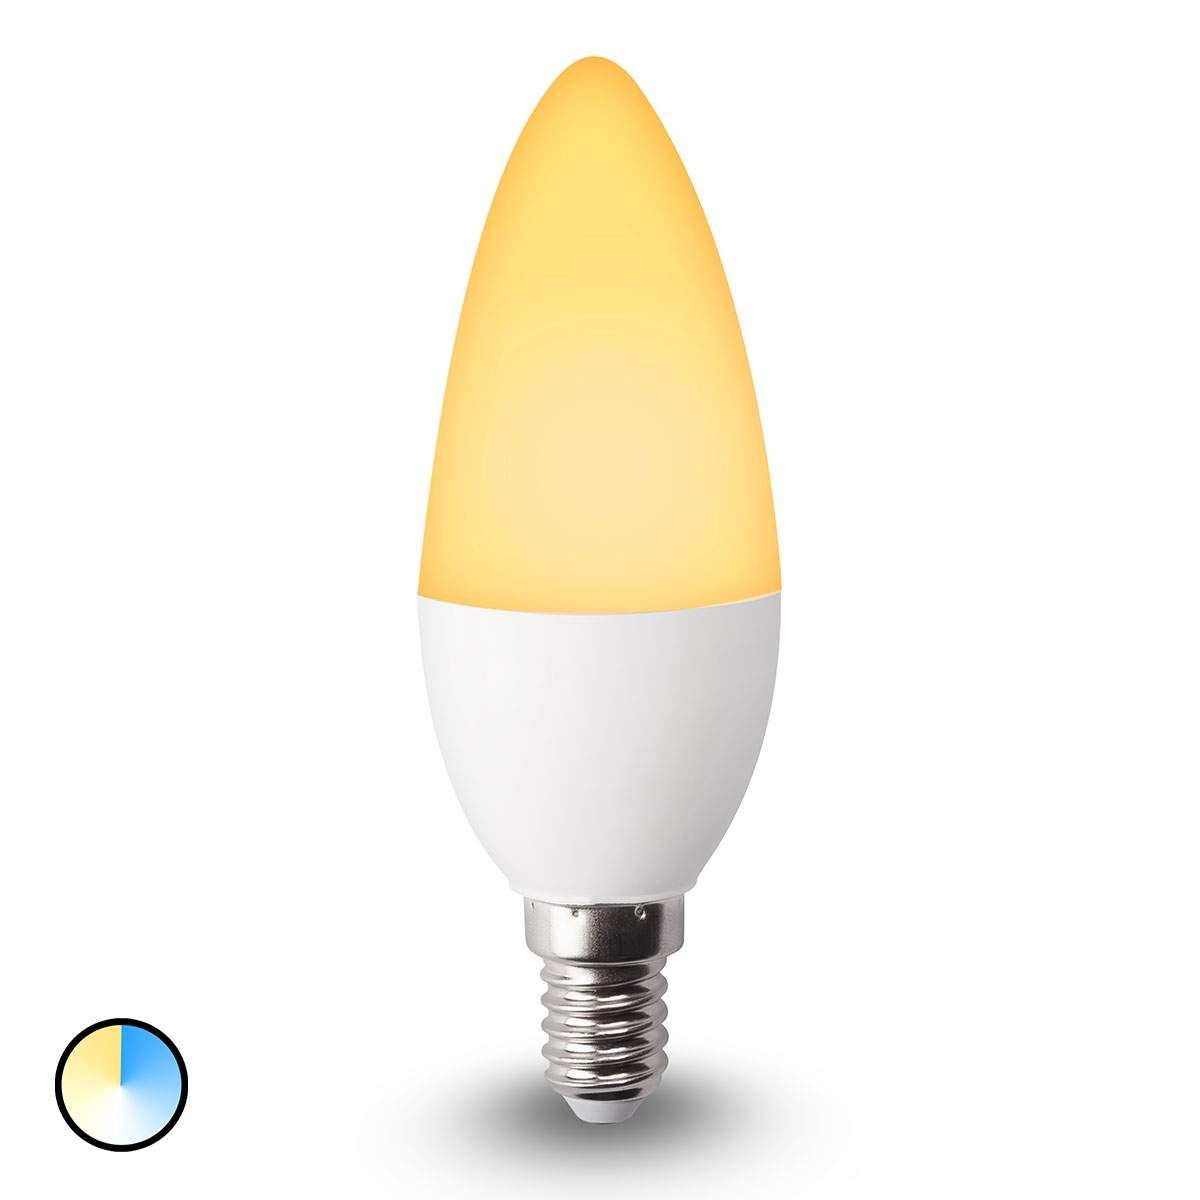 E14 5 4 W Led Lampe Innr Smart Bulb Tunable White Products In 2019 Led Lampe Lampen Und Led